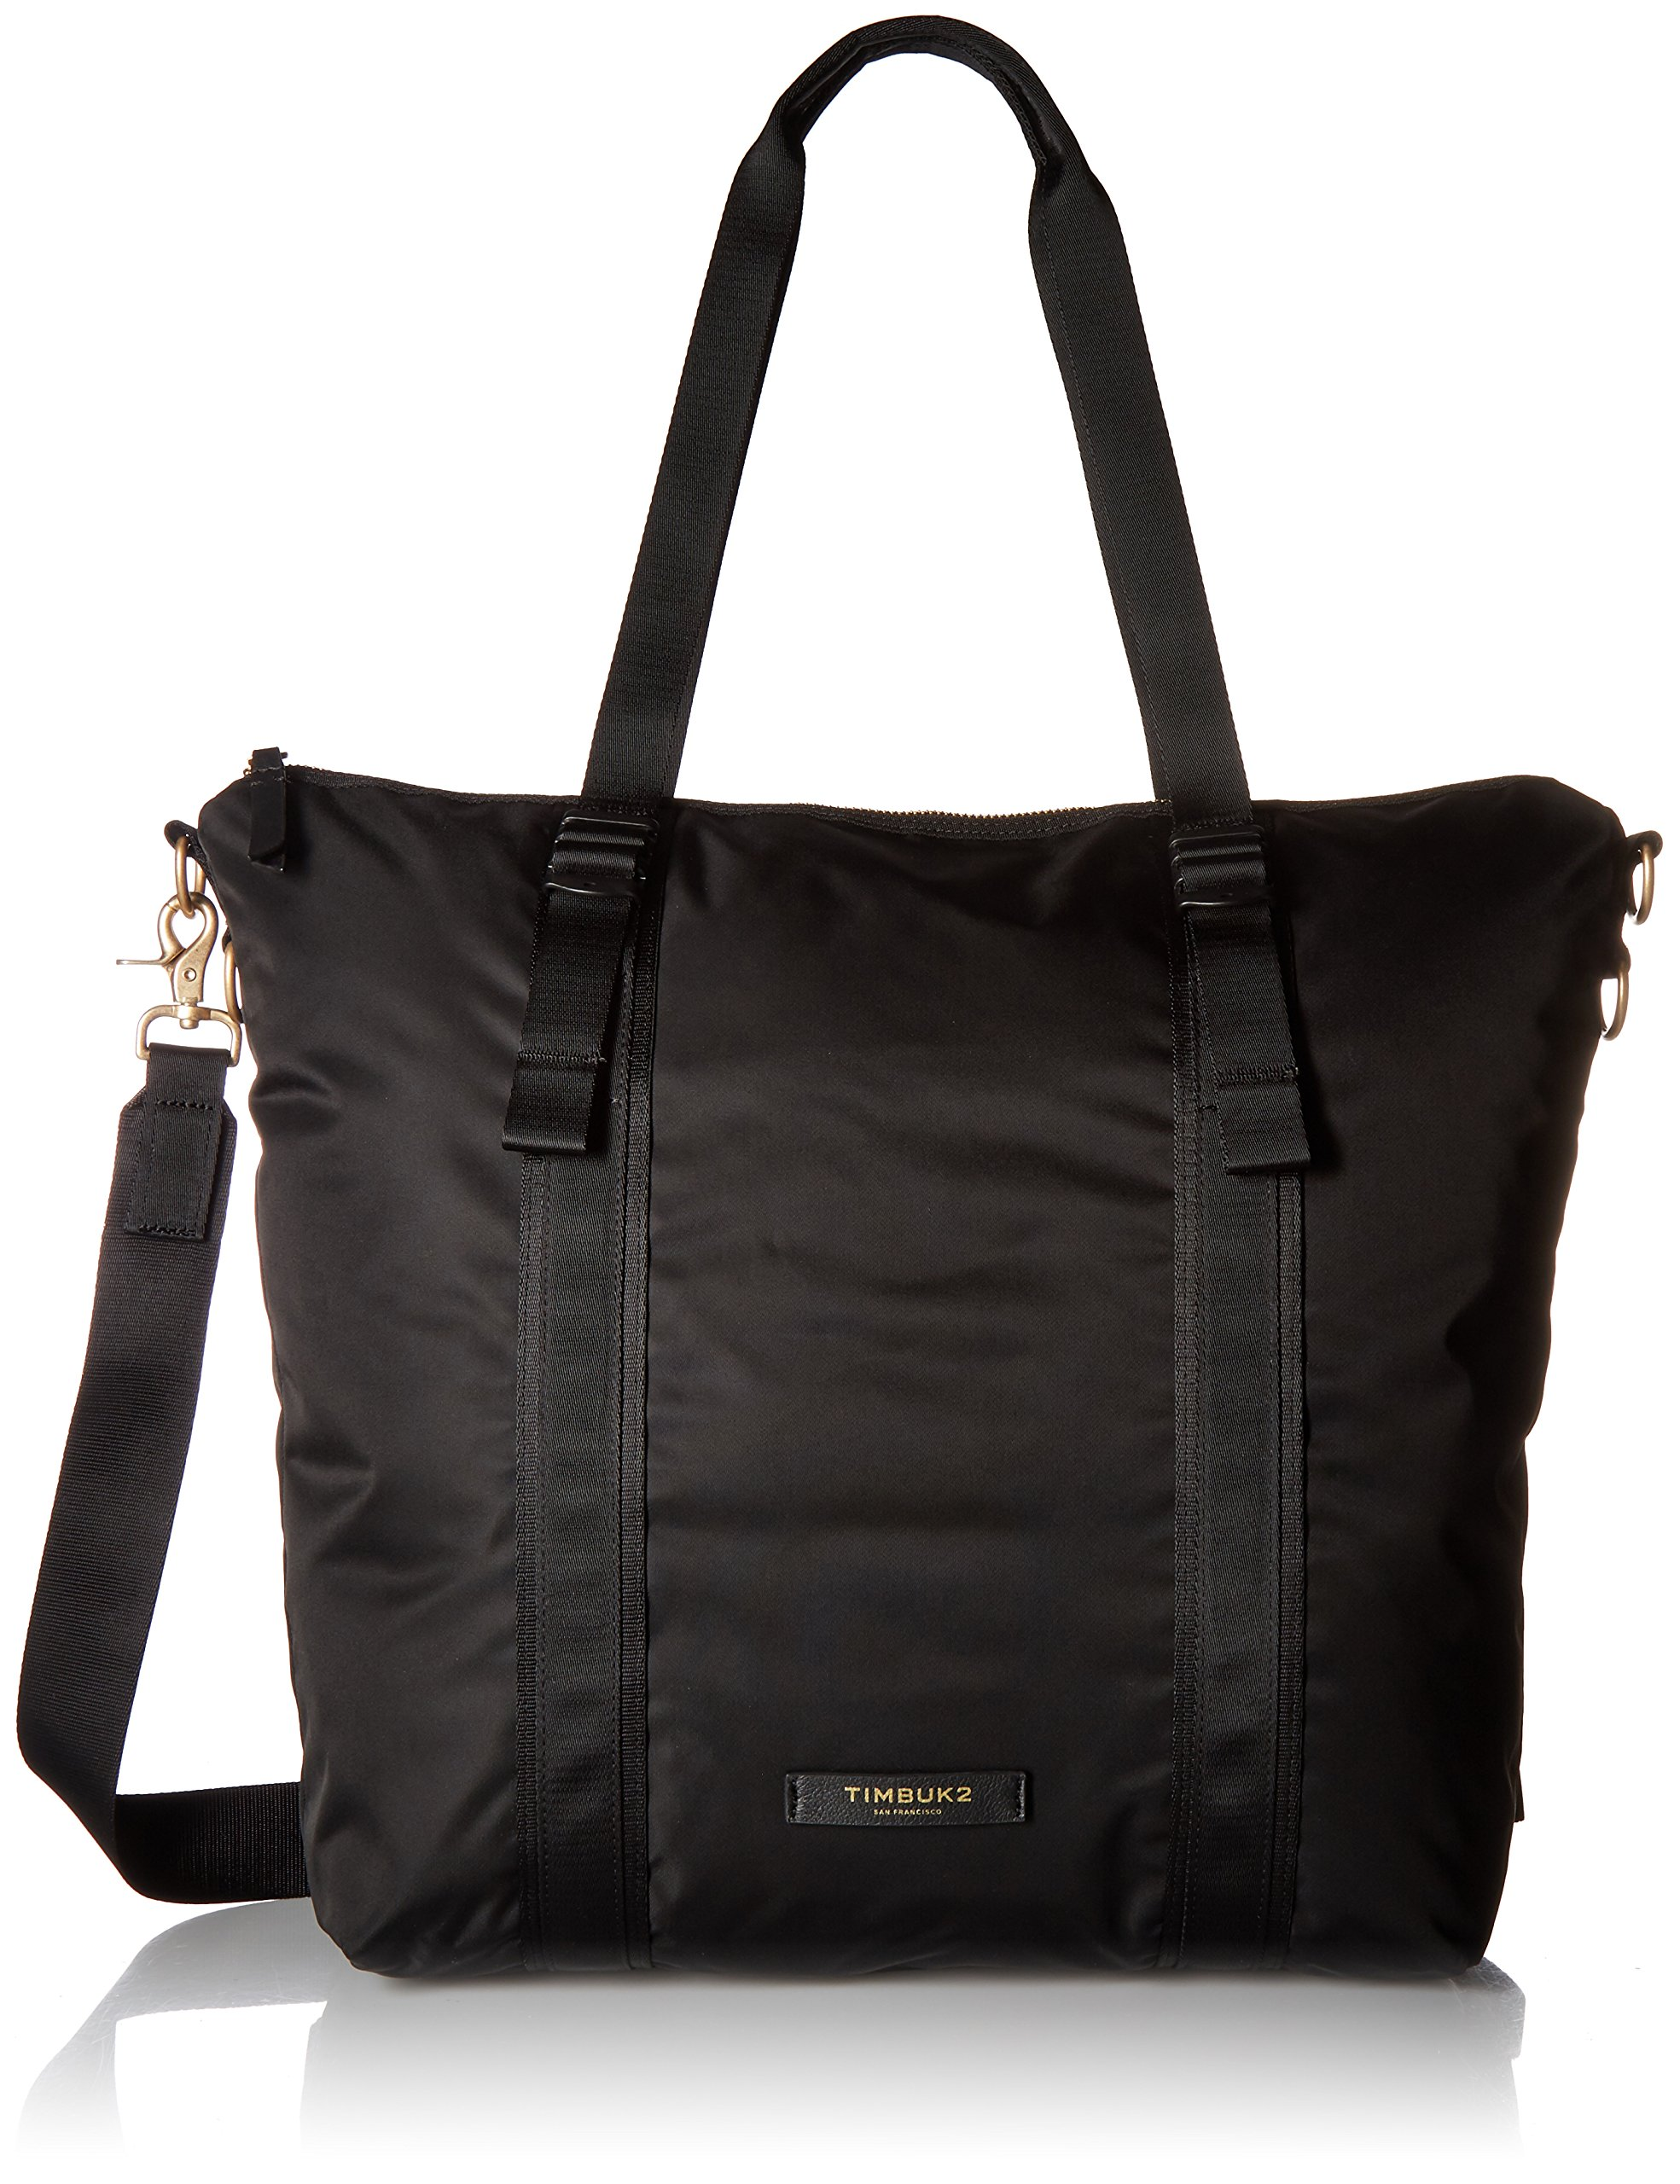 Timbuk2 Parcel Tote Bag, Jet Black, One Size by Timbuk2